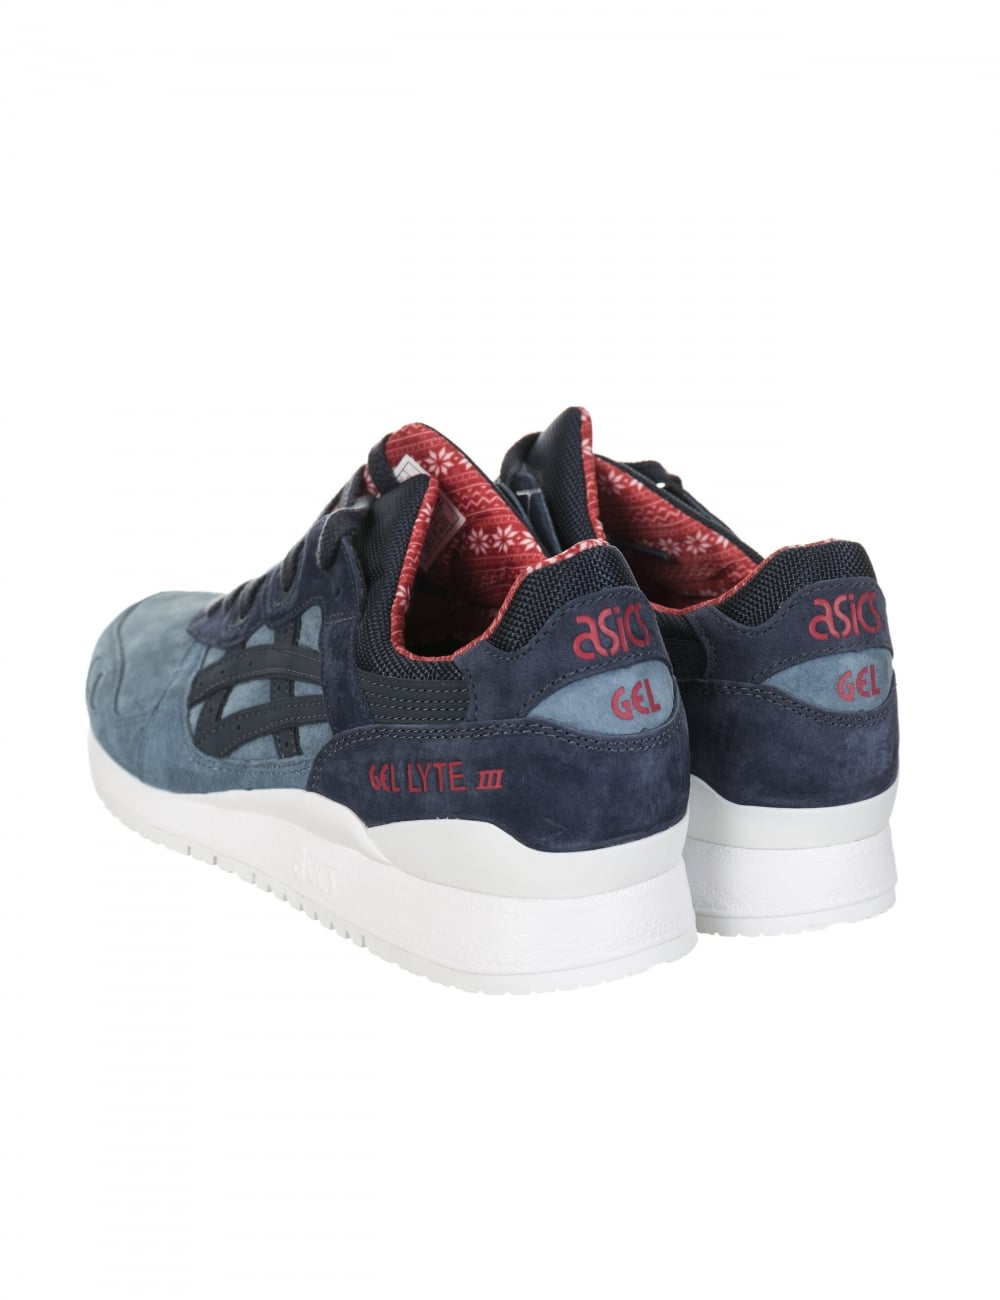 Gel Lyte III Shoes Blue Mirage/India Christmas Pack